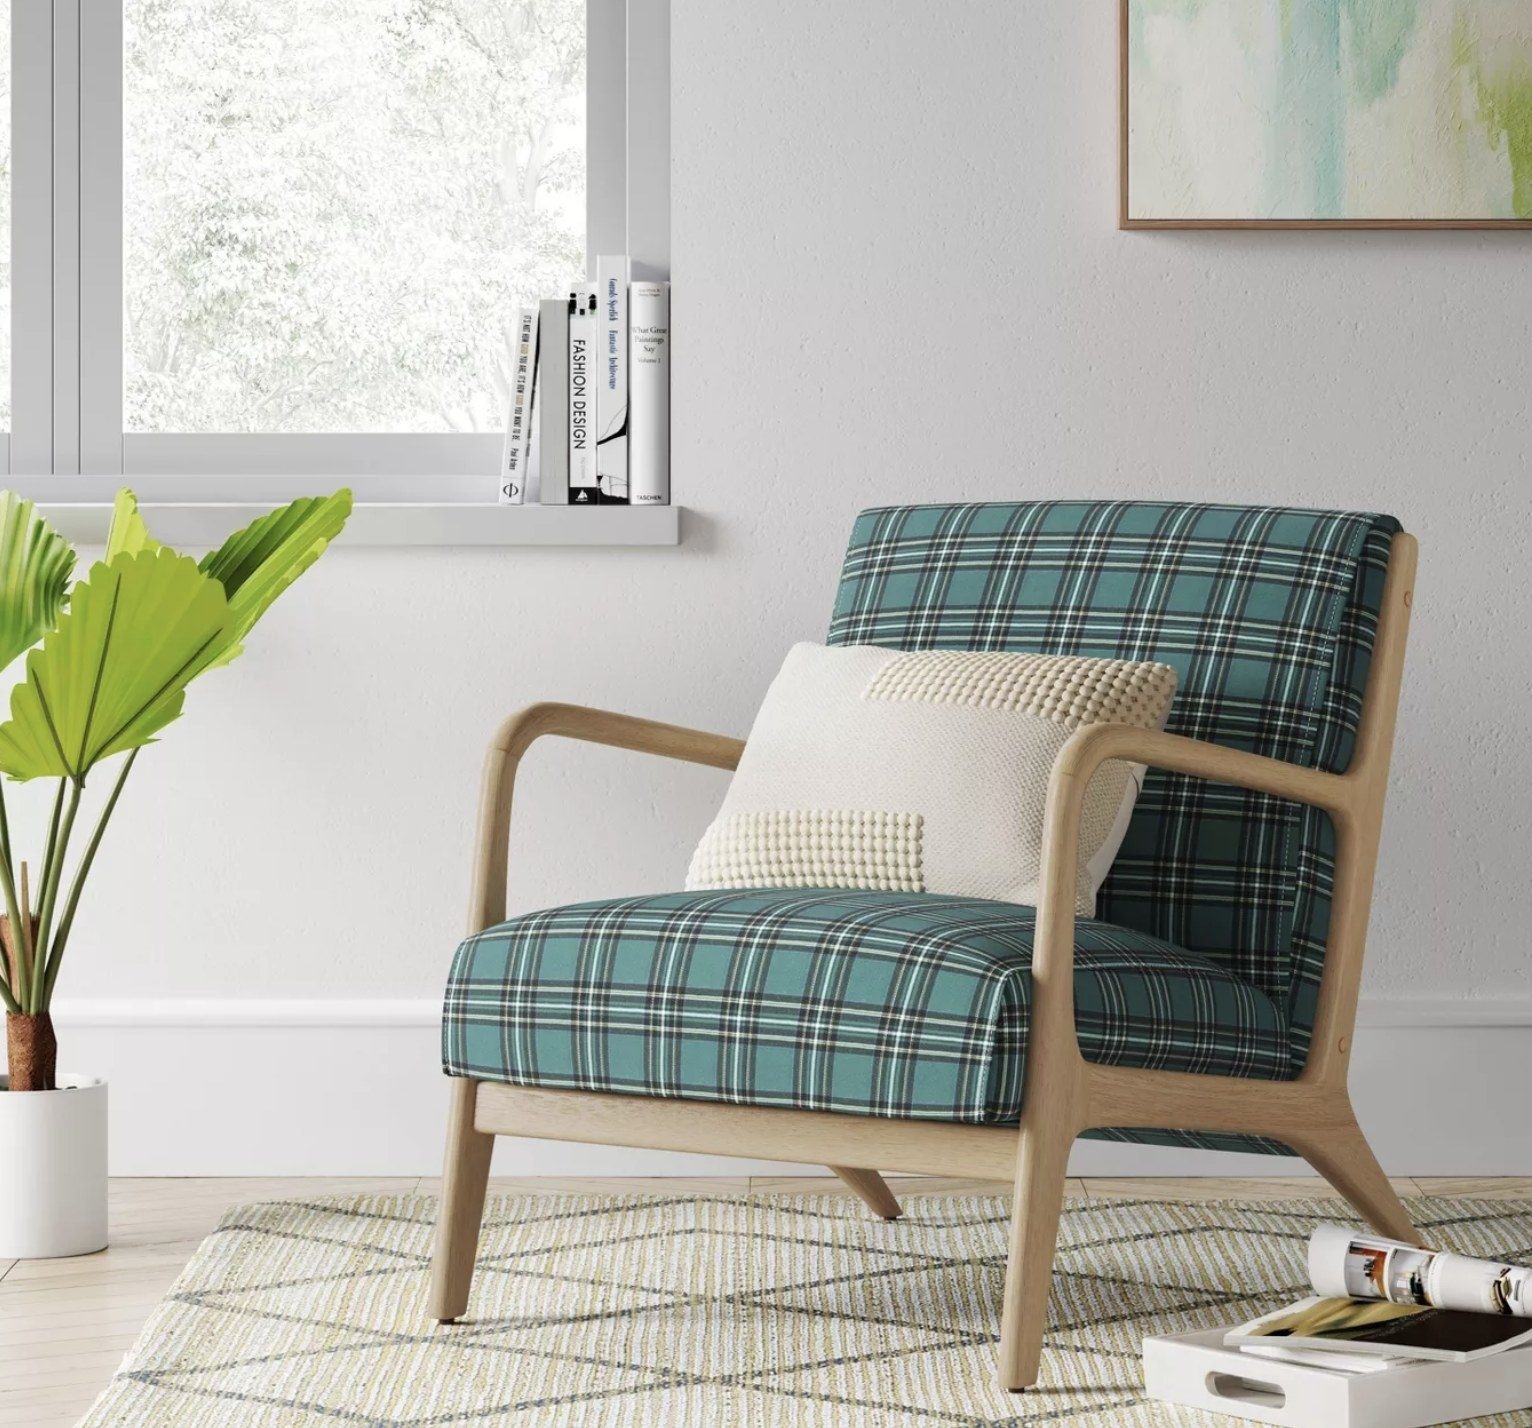 a green black and white plaid upholstered armchair with light wood arms and legs, sitting in a corner